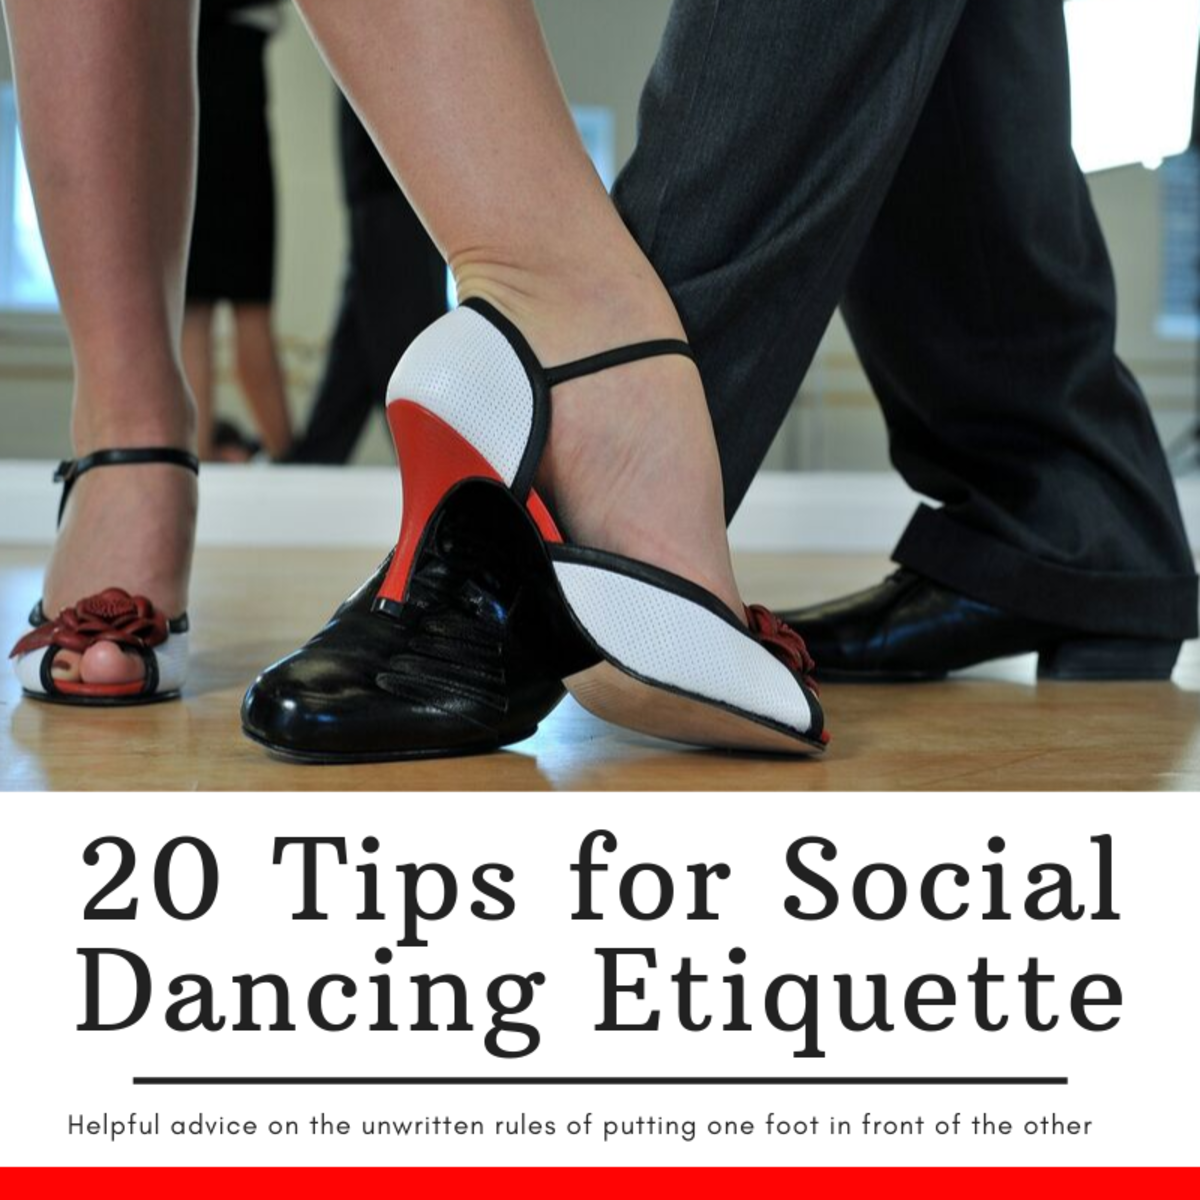 Dance Etiquette: 20 Tips for Social Dancing